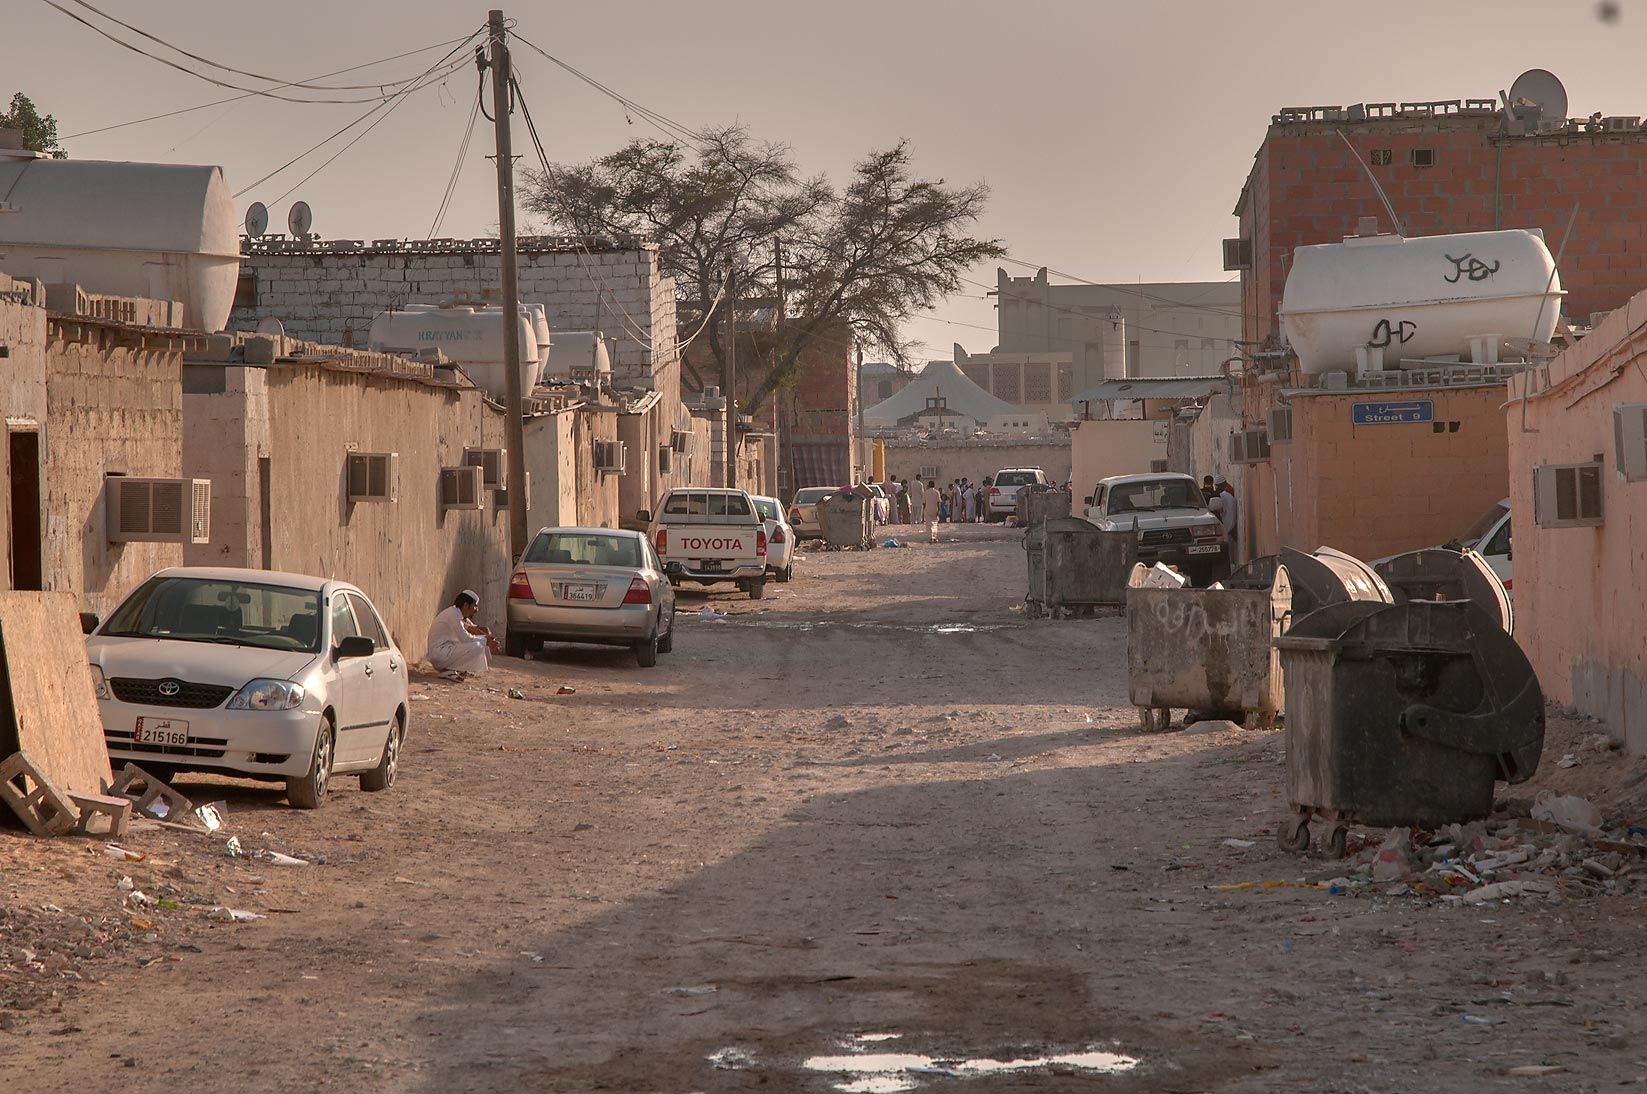 Street in Baluchi (Pakistani) Camp in Abu Hamour area. Doha, Qatar